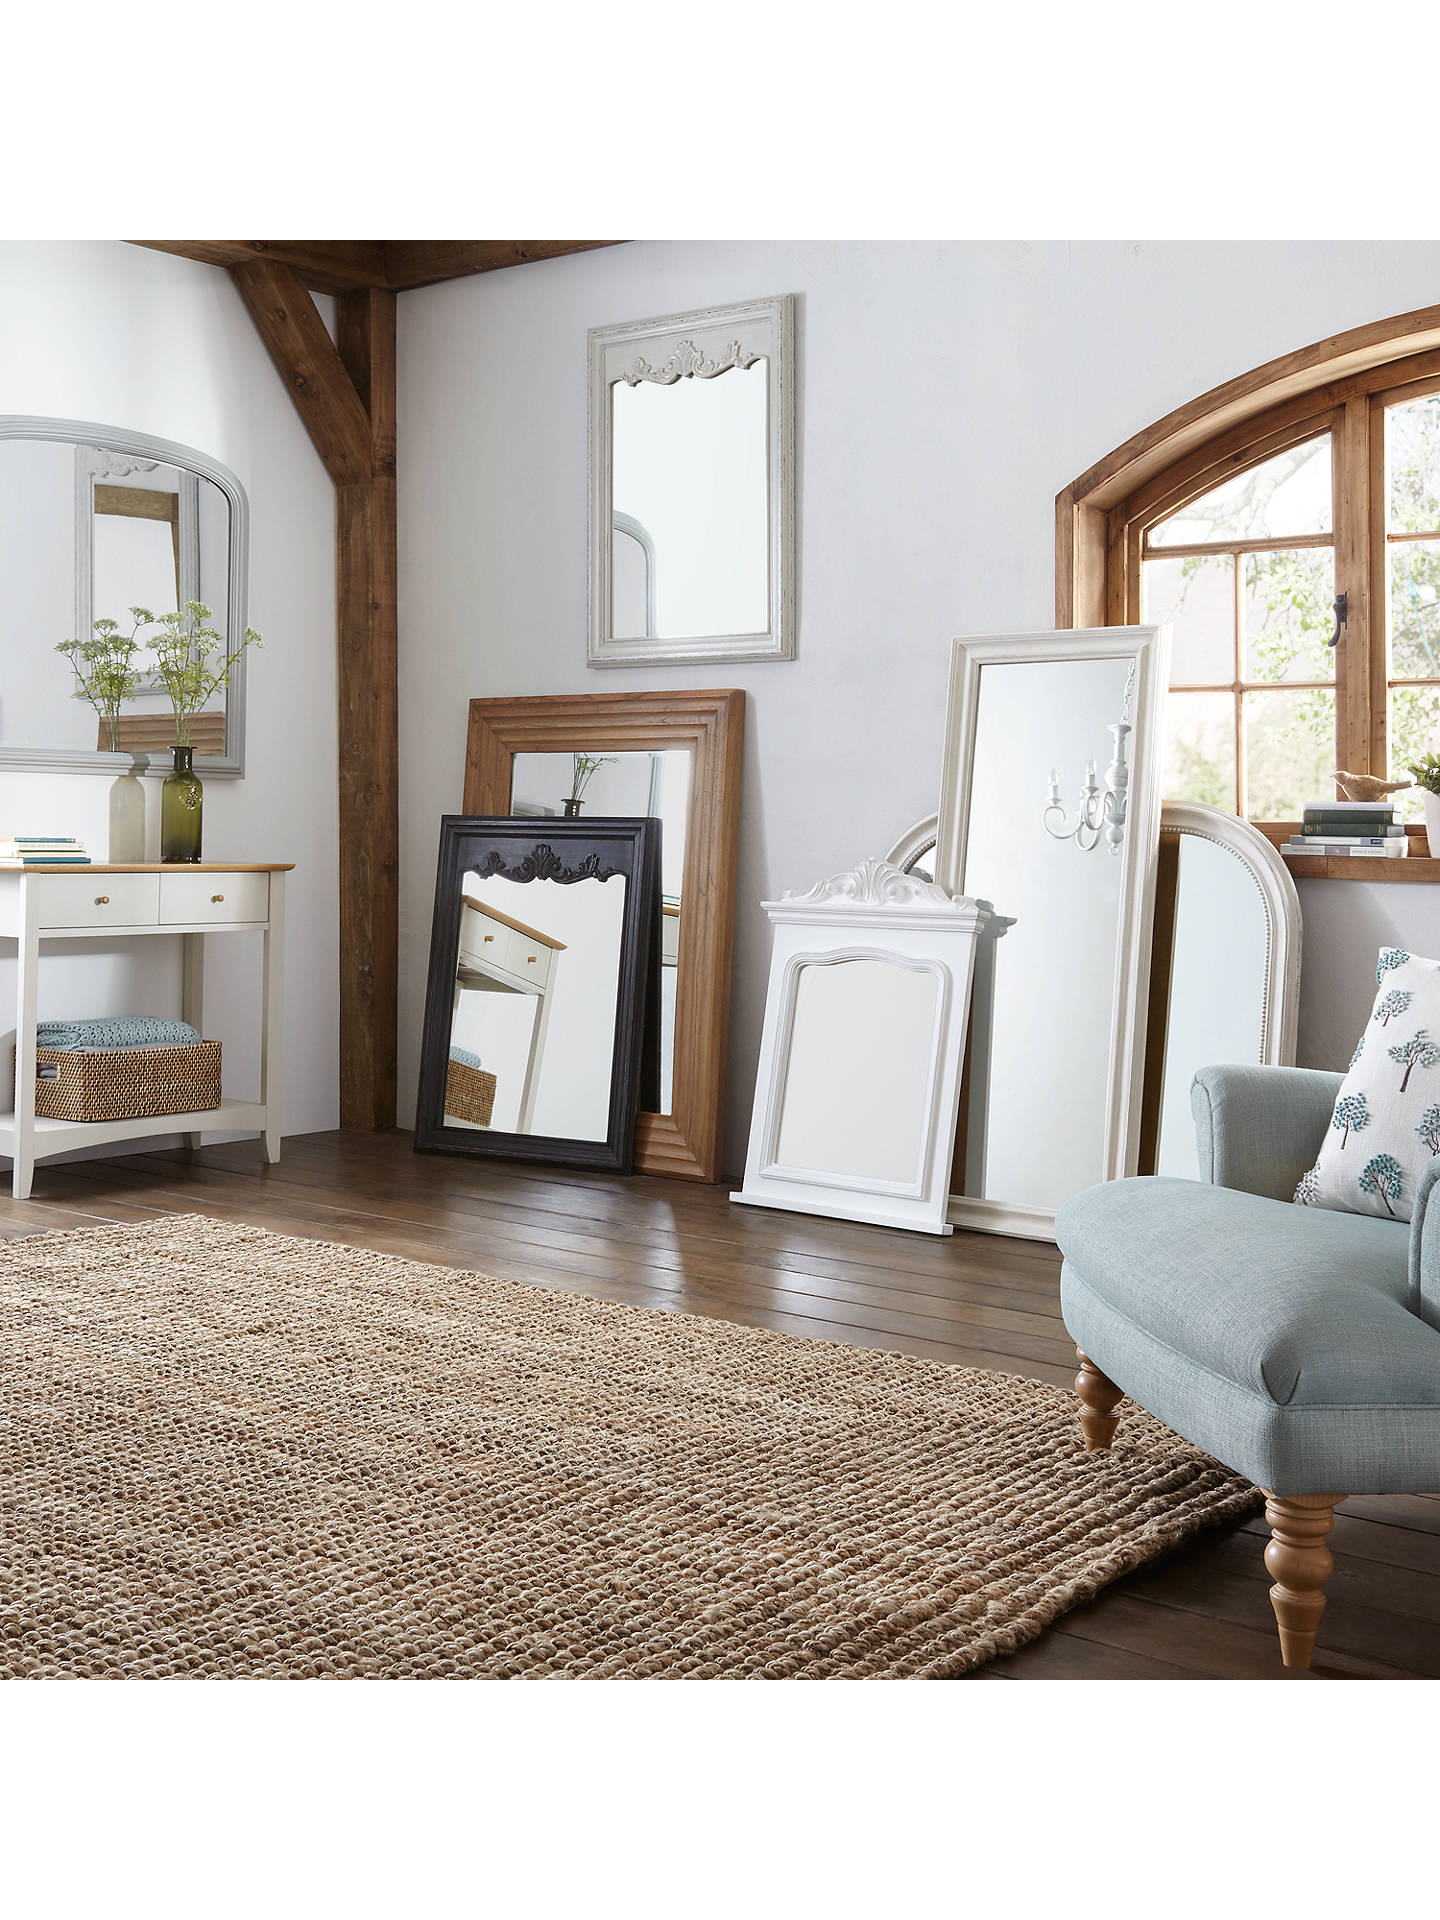 Buy John Lewis & Partners Distressed Full Length Mirror, 132 x 52cm, Cream Online at johnlewis.com